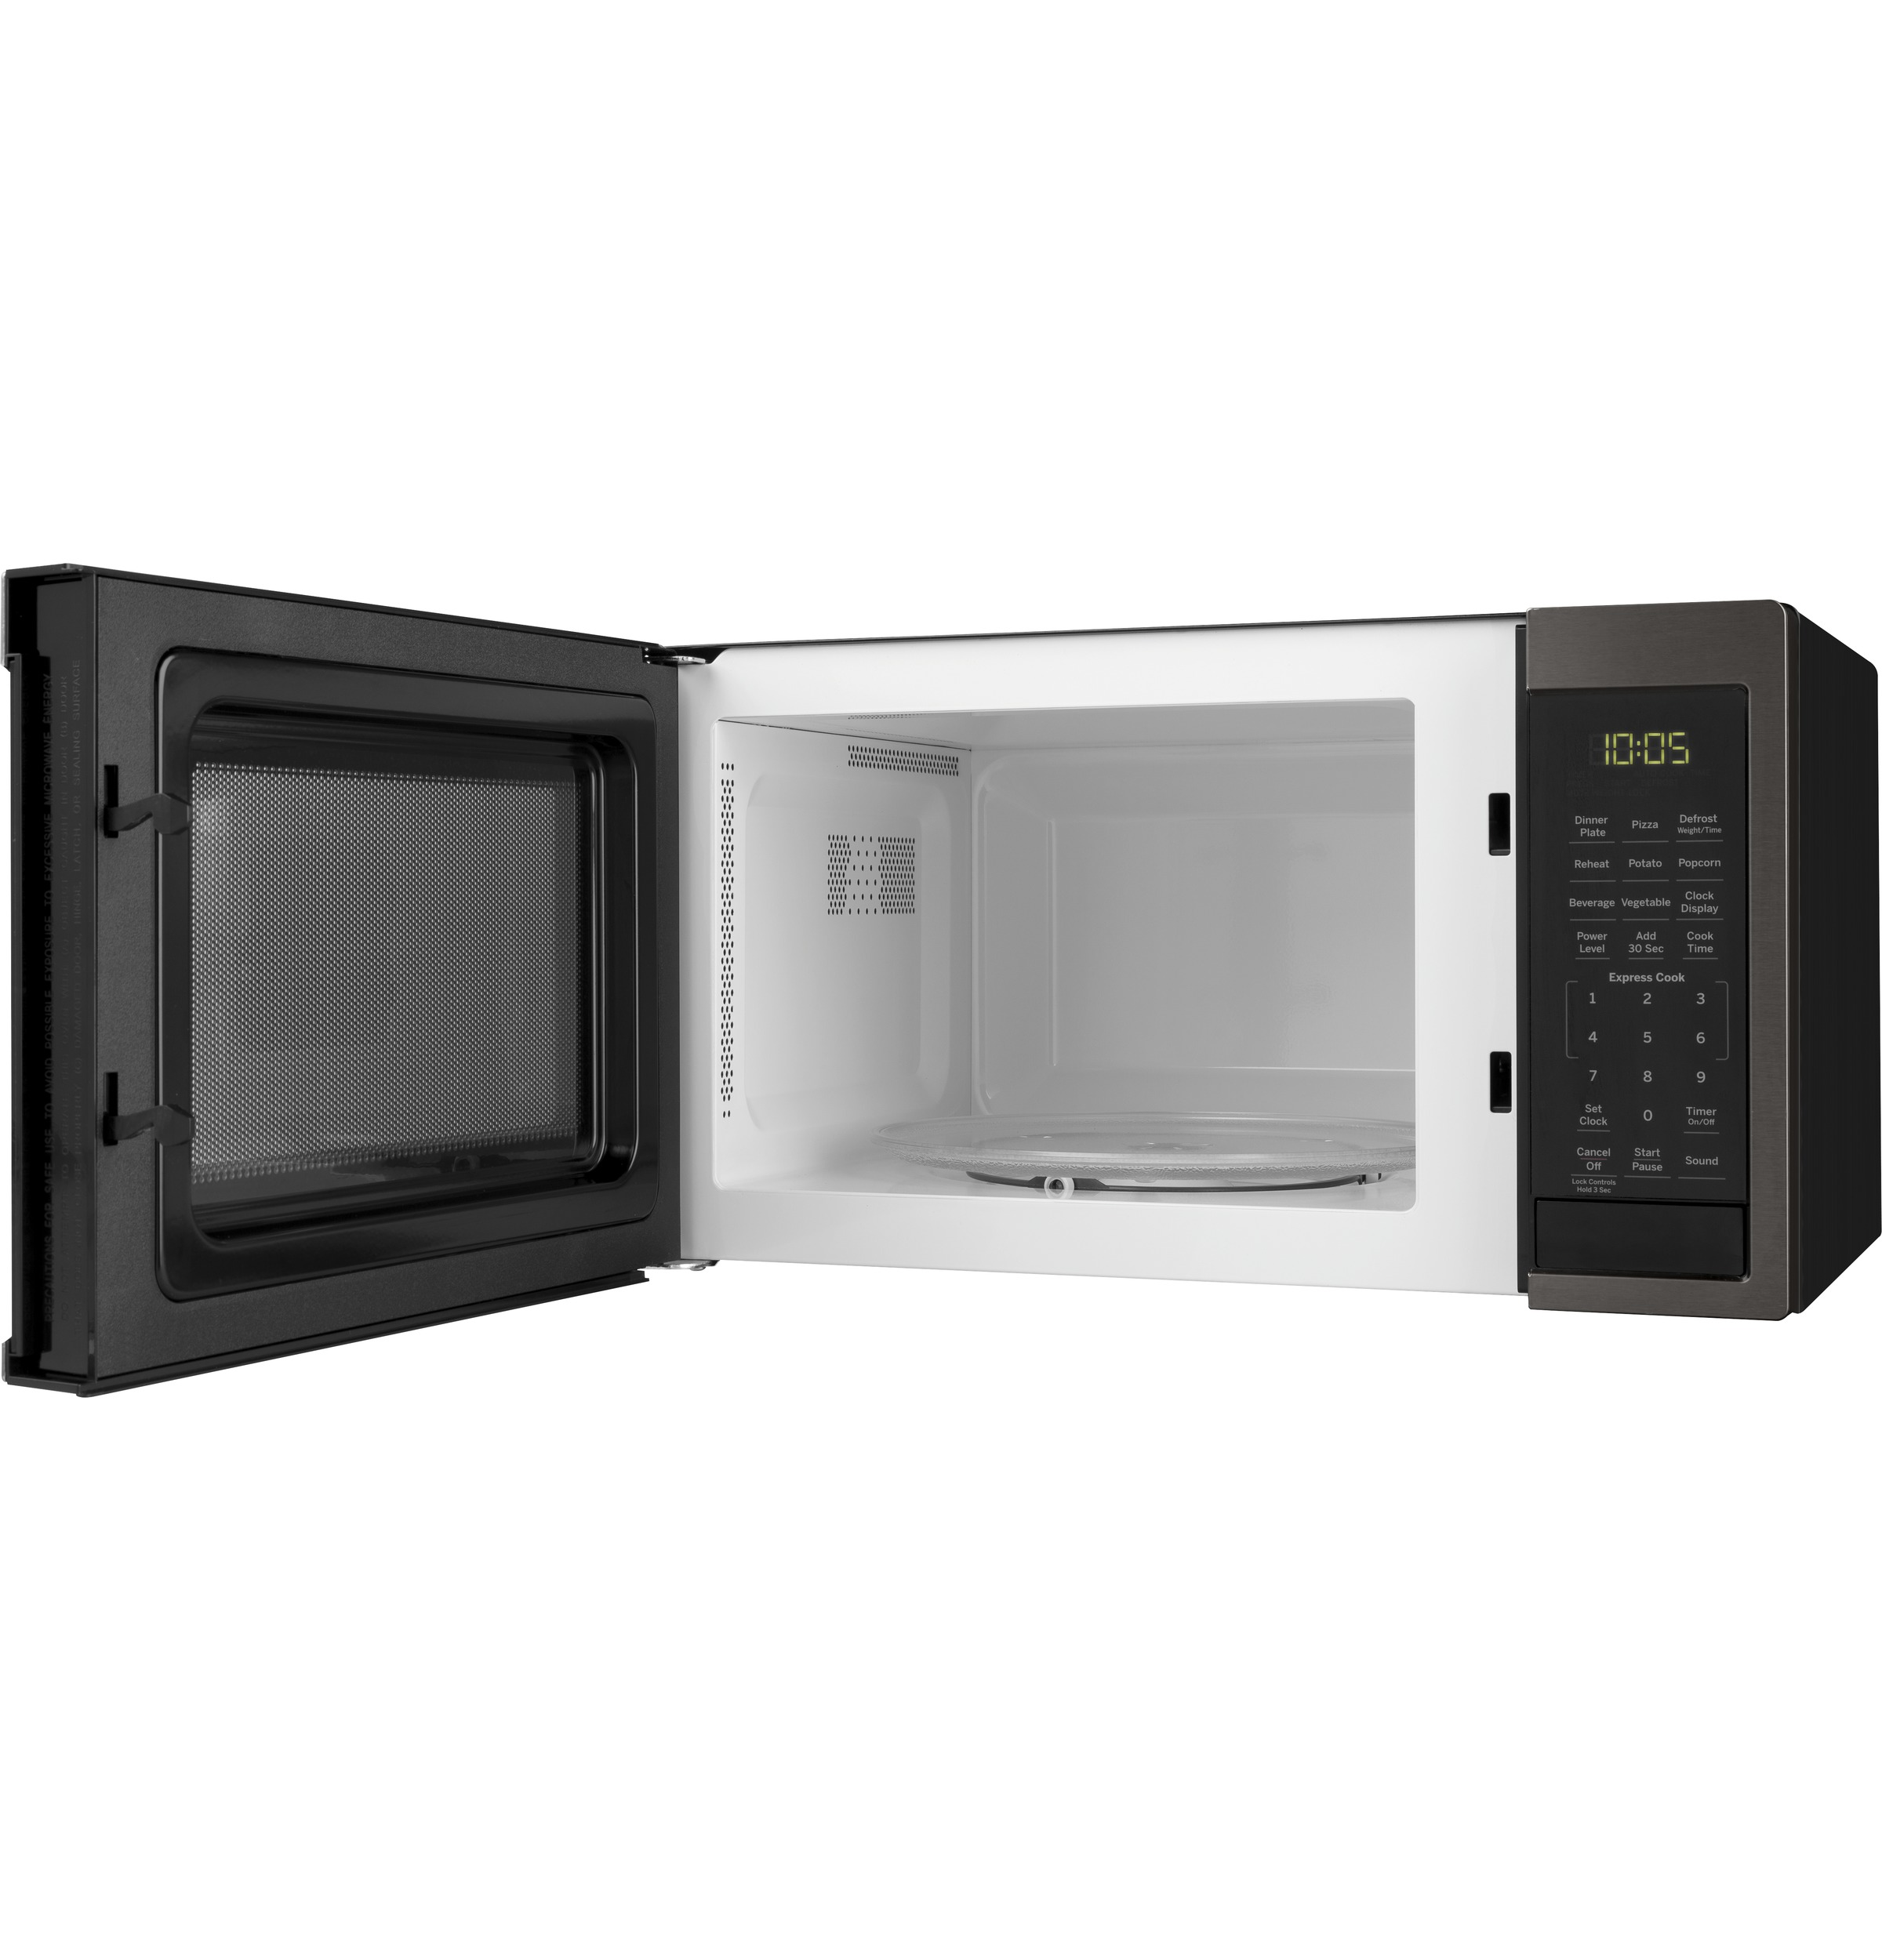 Model: JES1095BMTS | GE GE® 0.9 Cu. Ft. Capacity Countertop Microwave Oven